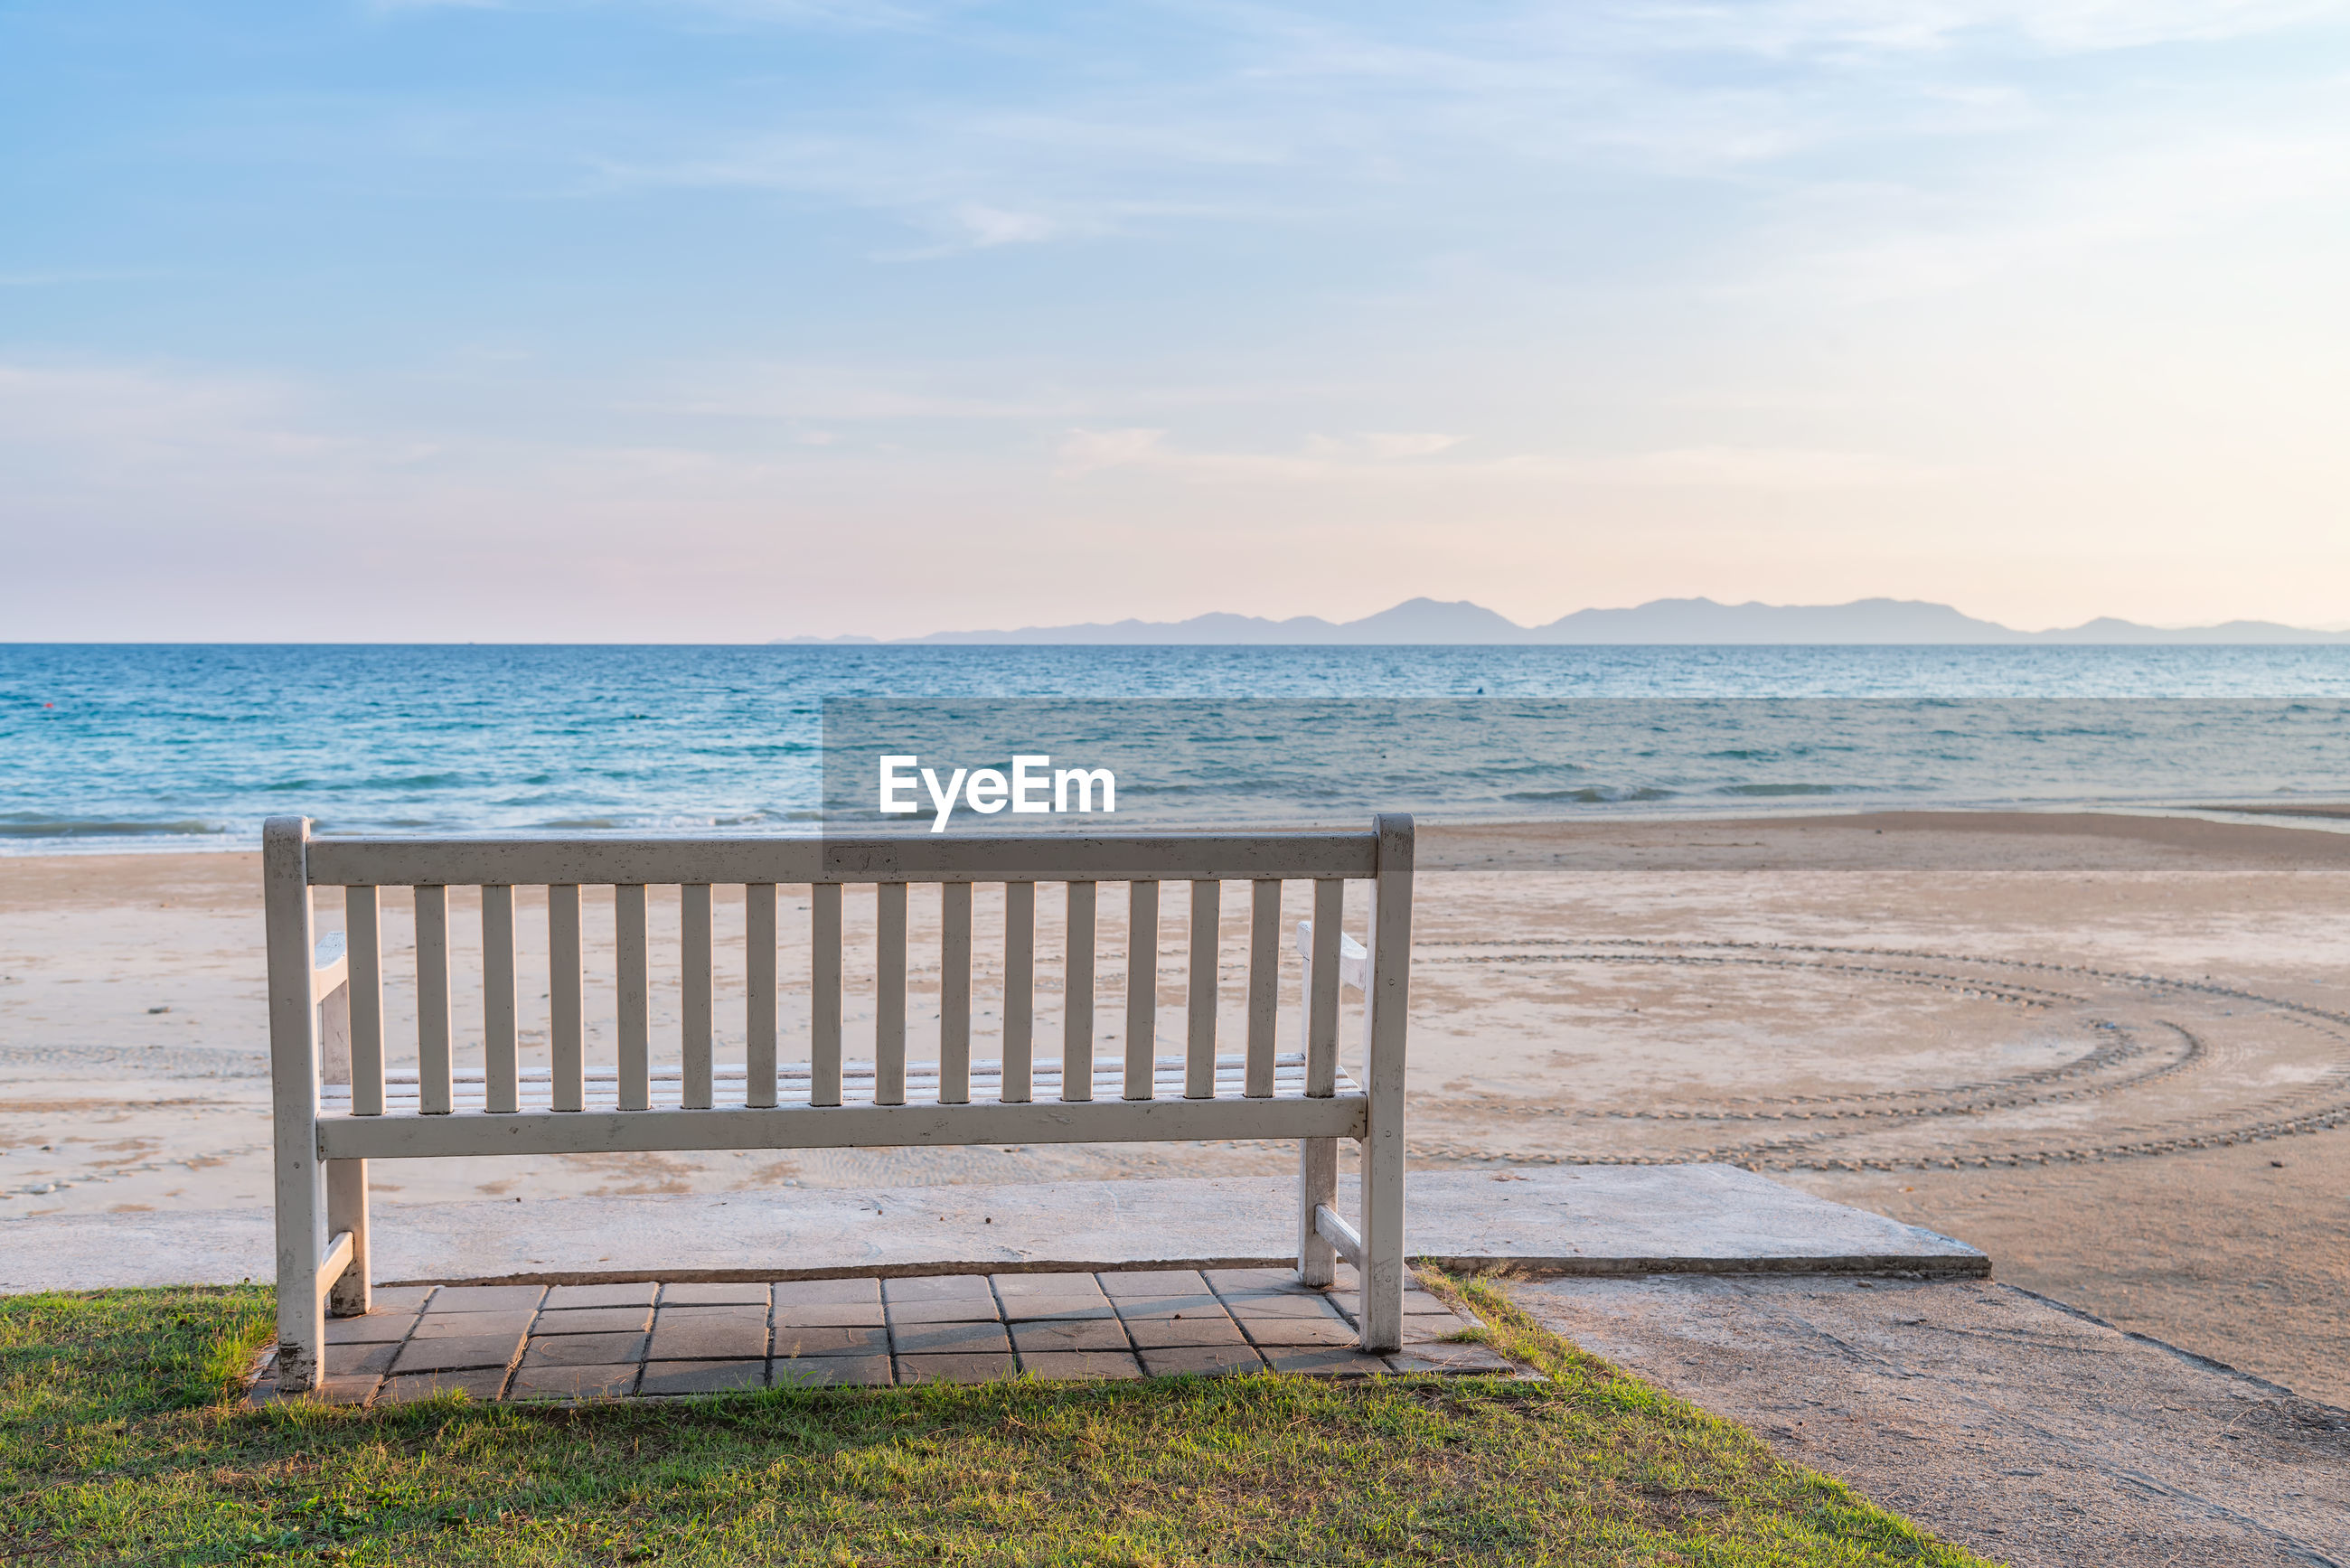 Empty bench at beach against sky during sunset